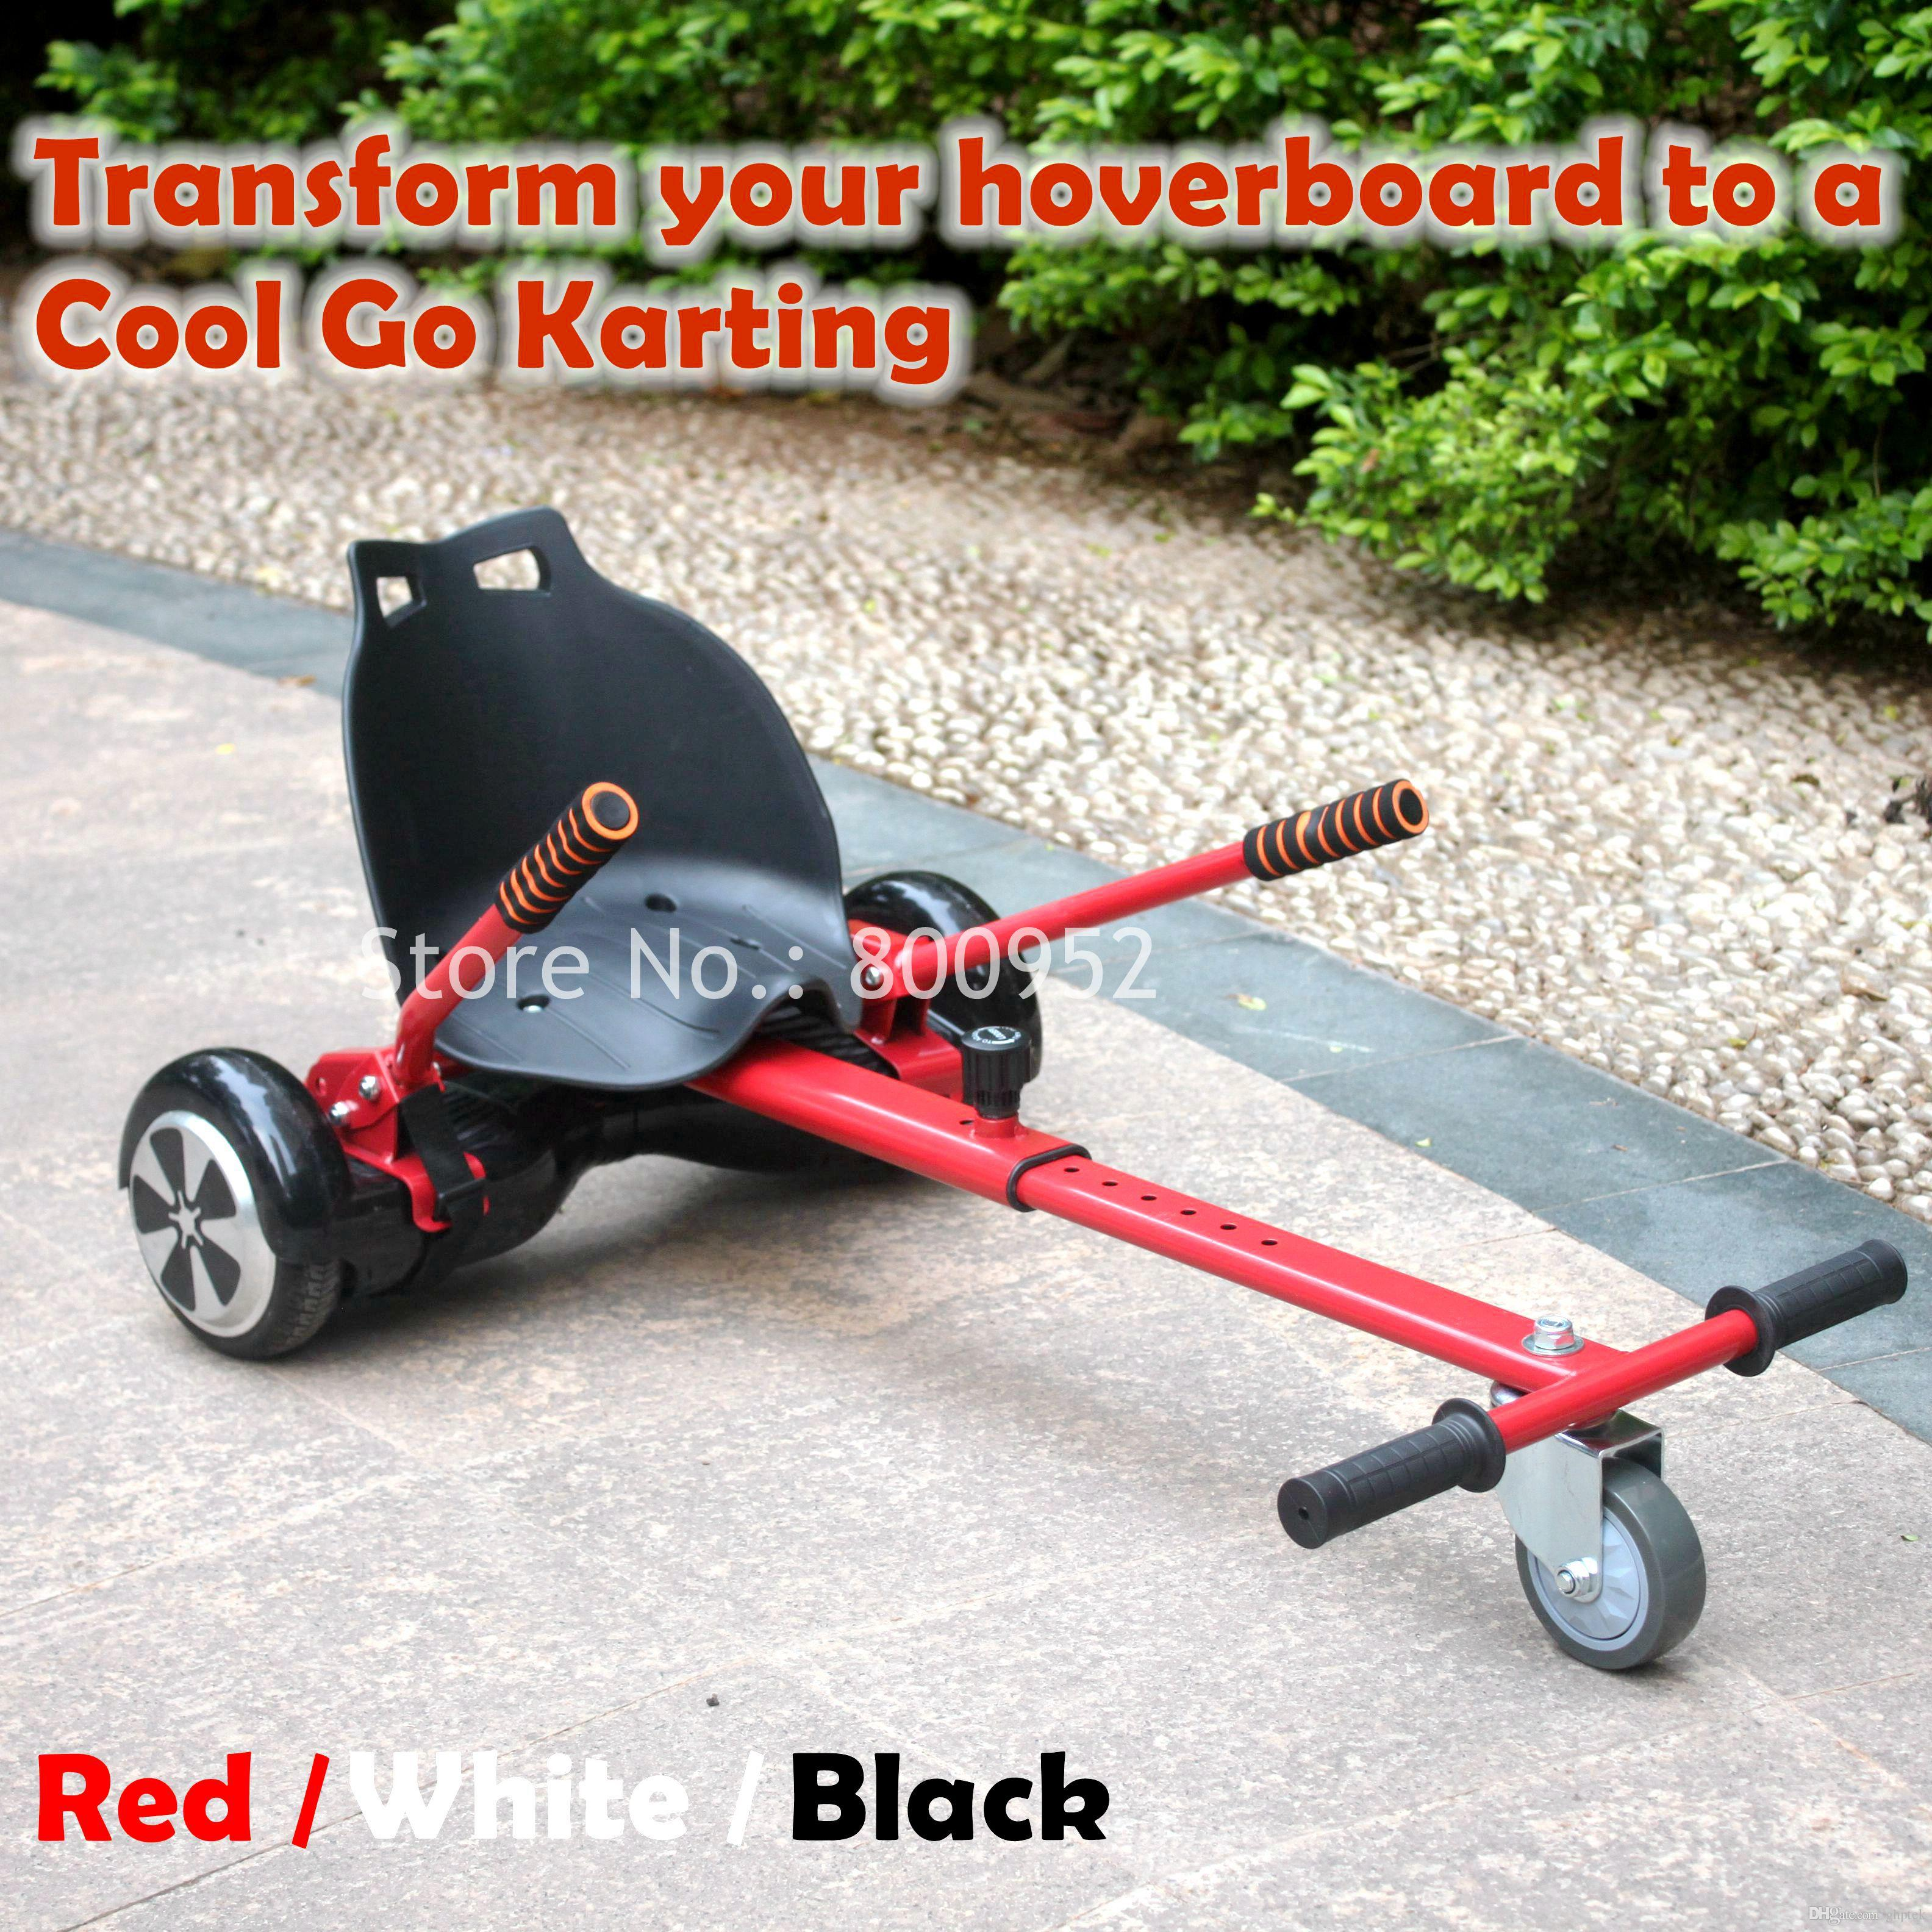 Hoverboard Plans 2017 Cool Mini Go Kart Hoverkart Hoverseat Diy Accessories For 65